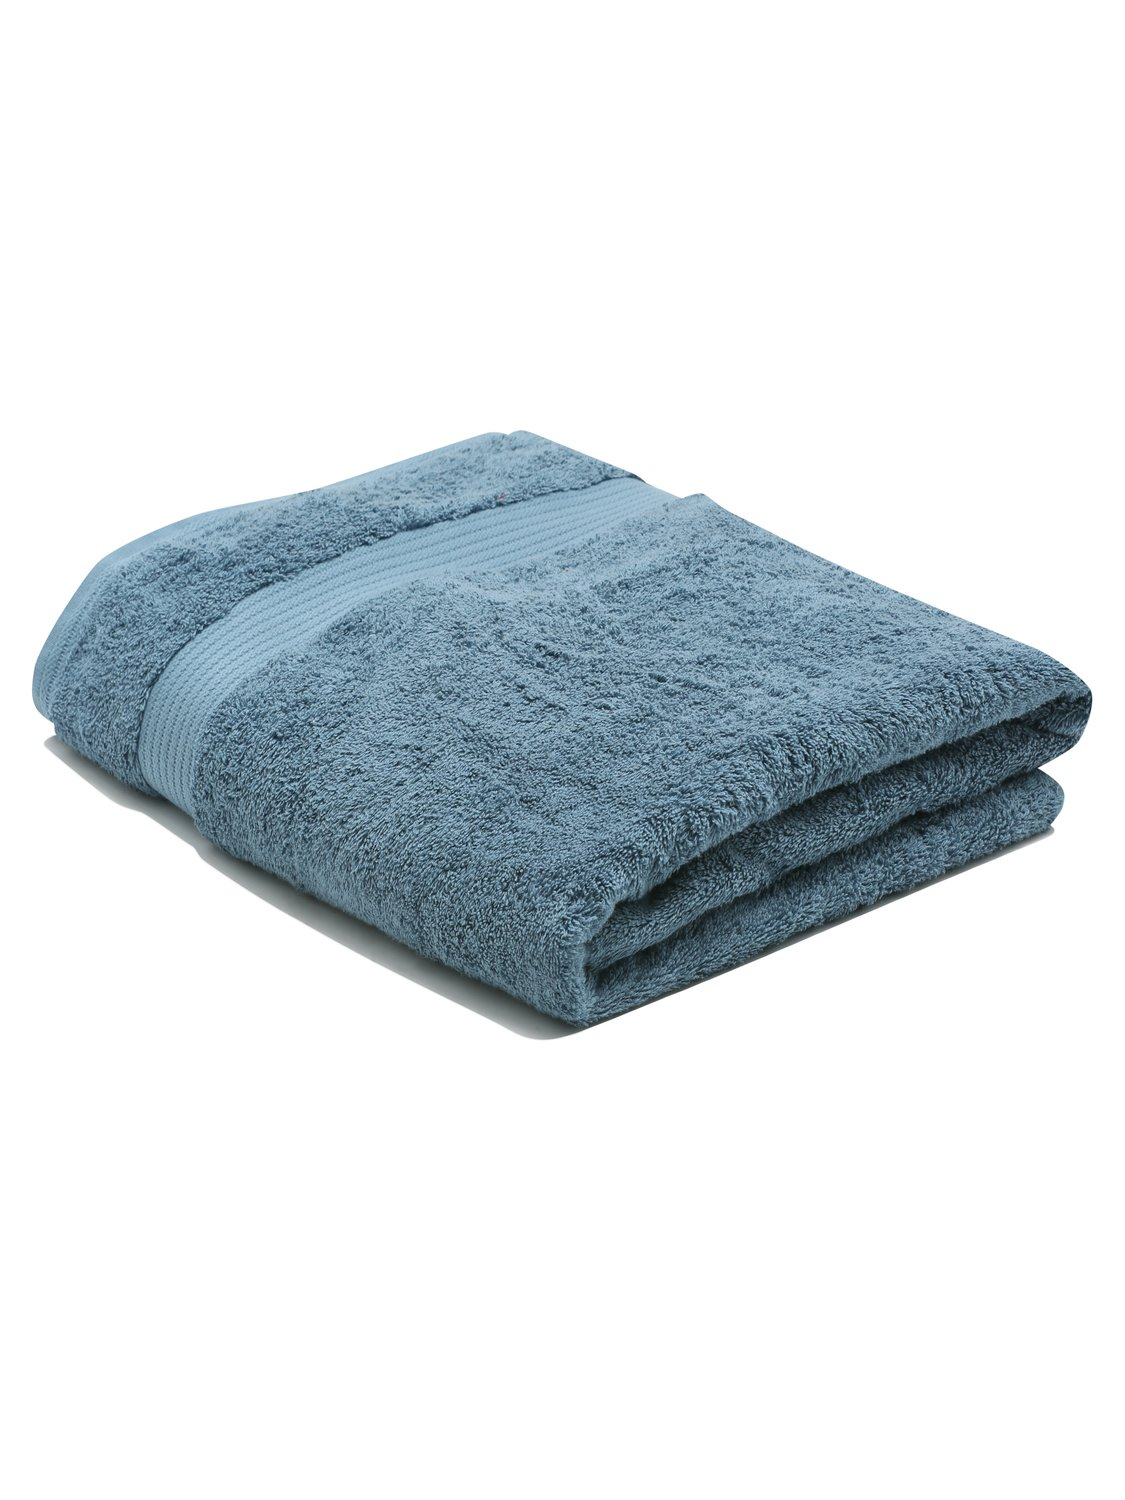 Image of 100% Combed Cotton 580Gsm Luxury Soft And Absorbent Bath Sheet - Petrol Blue